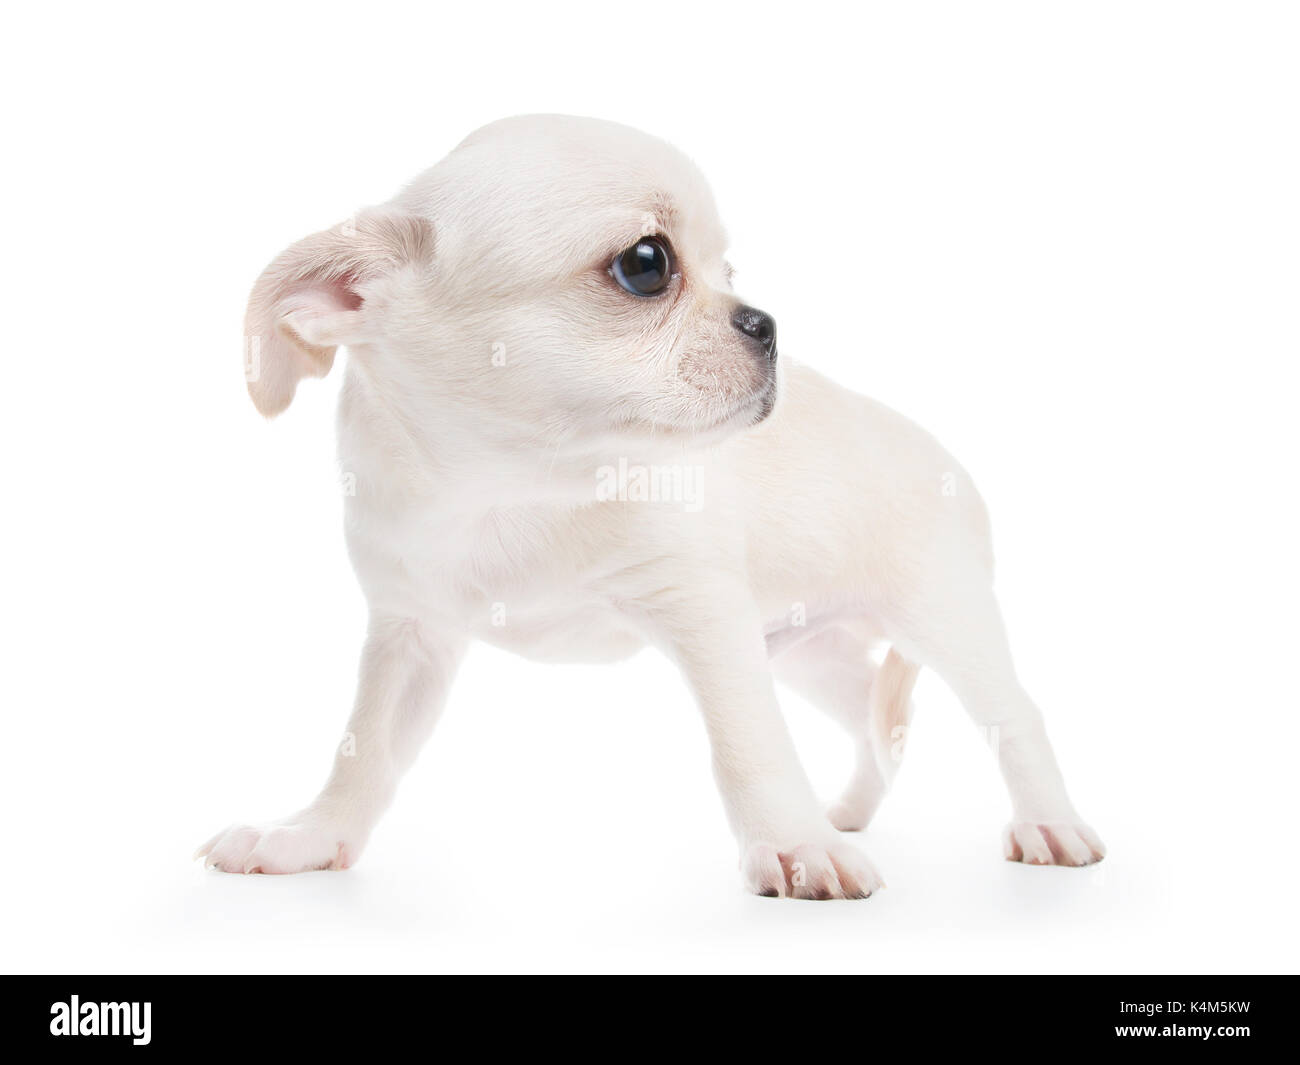 Chihuahua cobby type white purebred puppy. Isolated on white - Stock Image